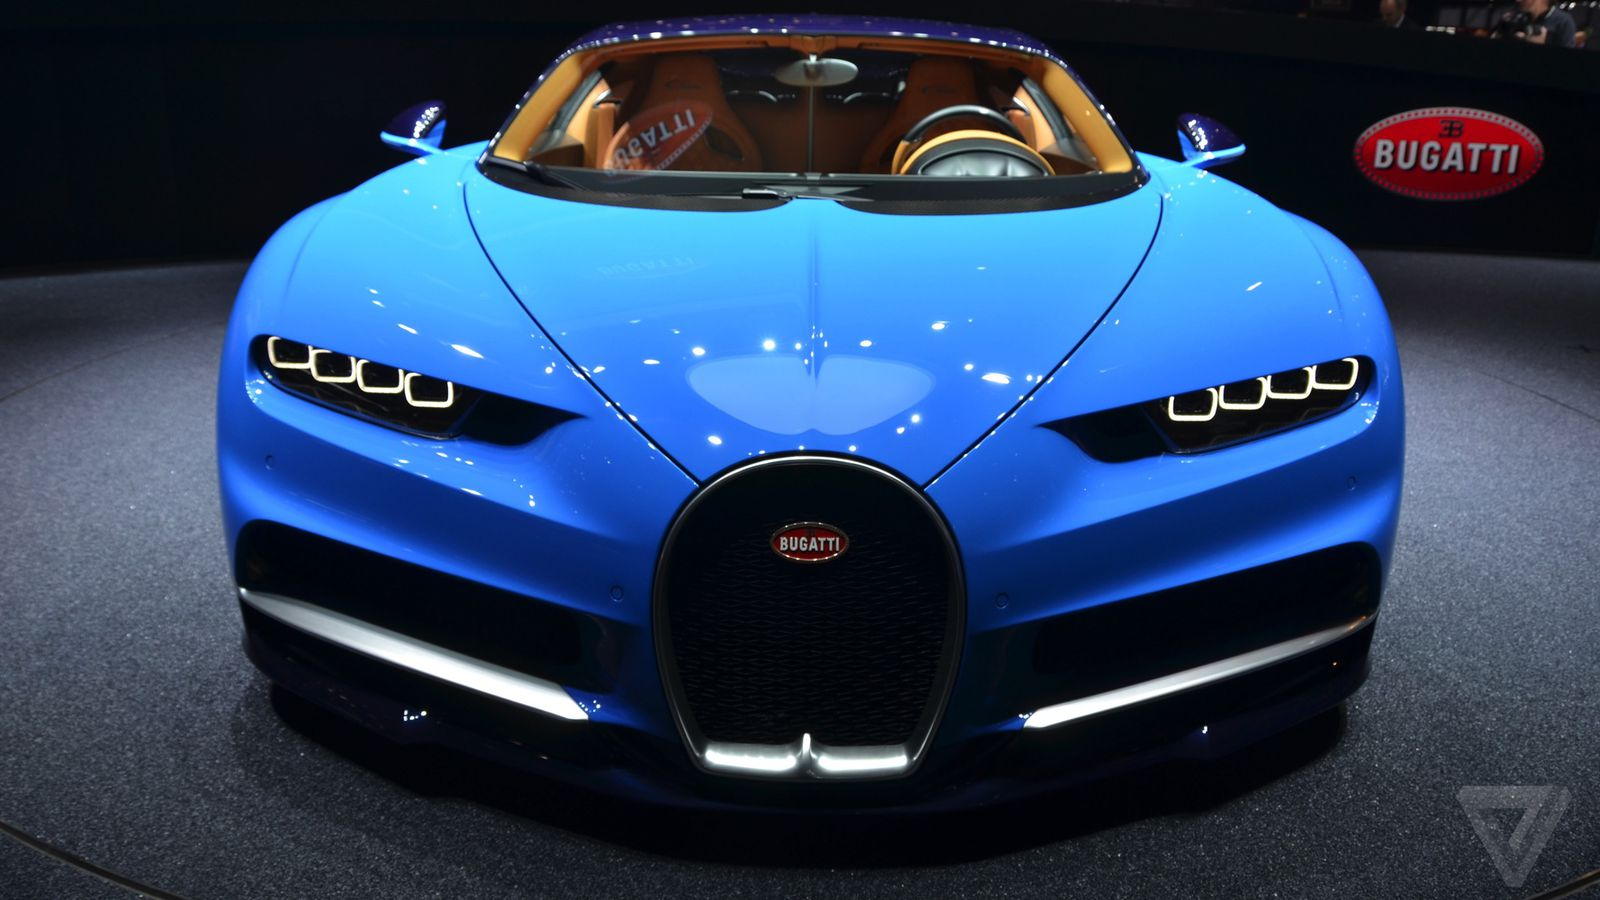 The Bugatti Chiron Is The World S Fastest Road Car The Verge